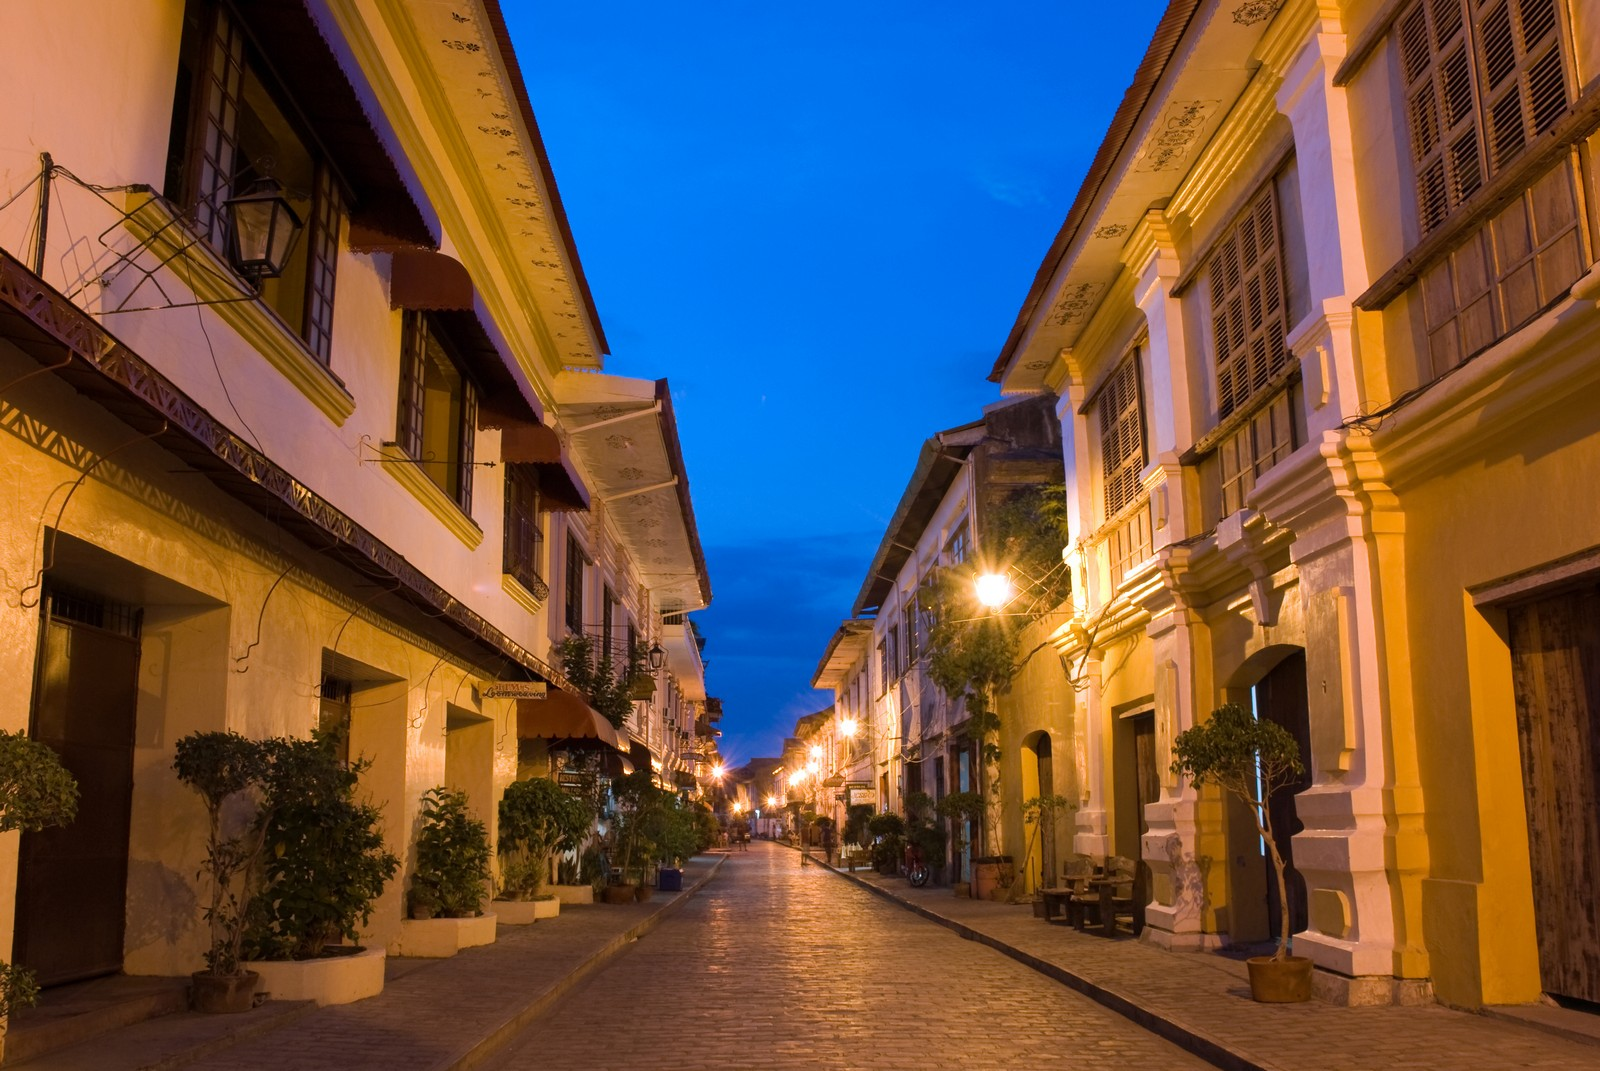 Night view of Calle Crisologo in Vigan